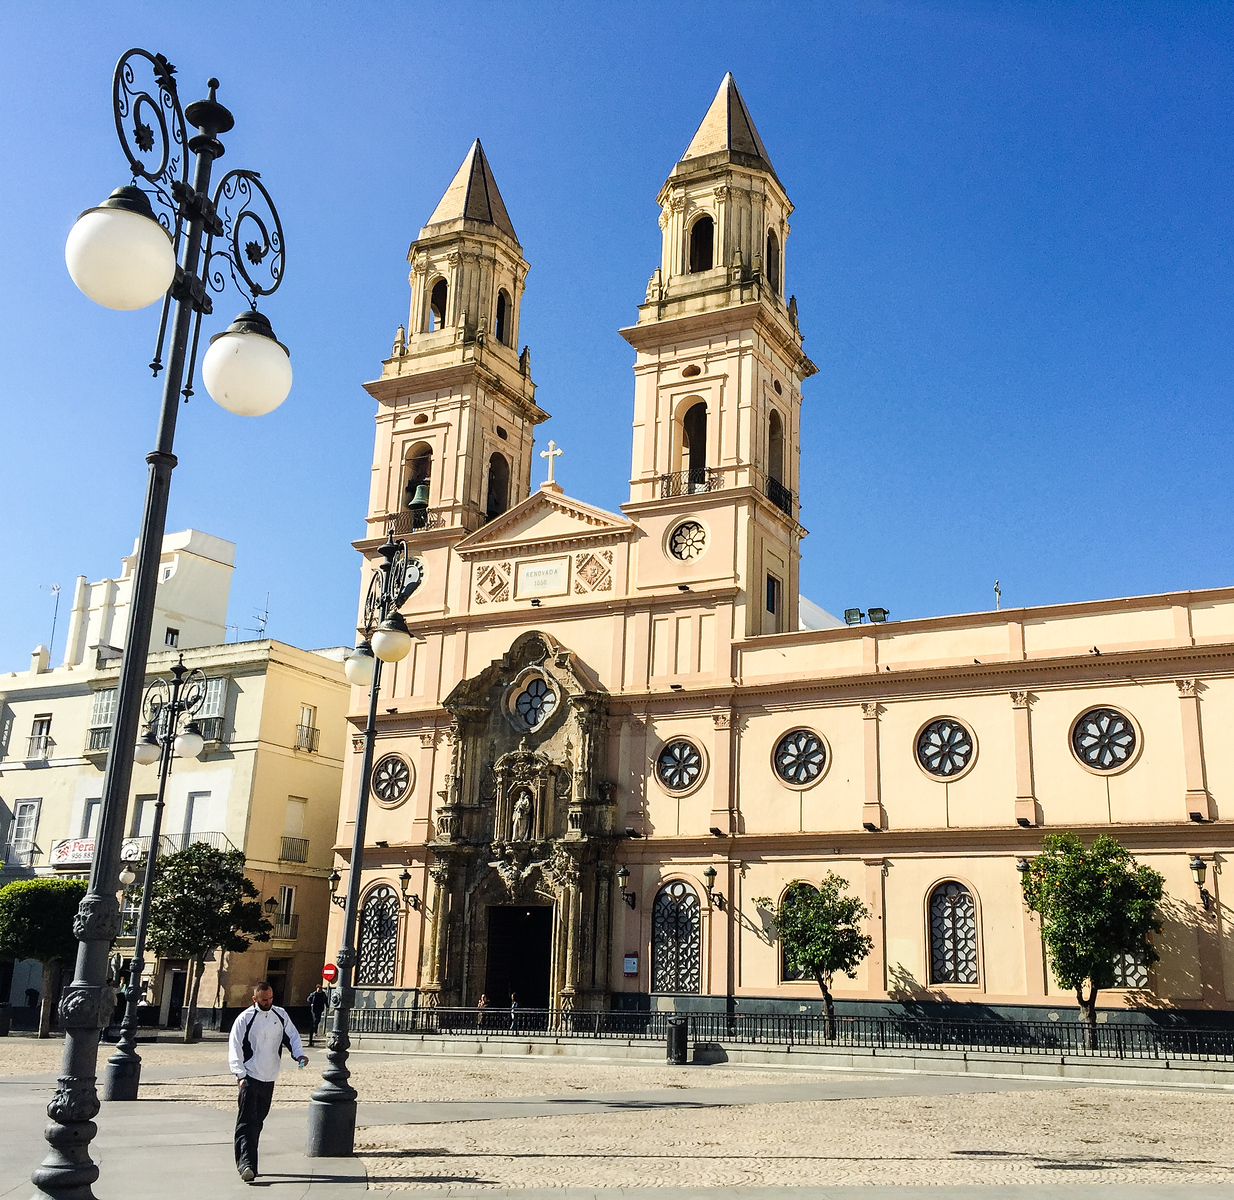 The architecturally appealing Church of San Antonio looks out on a square in Cadiz, Spain.